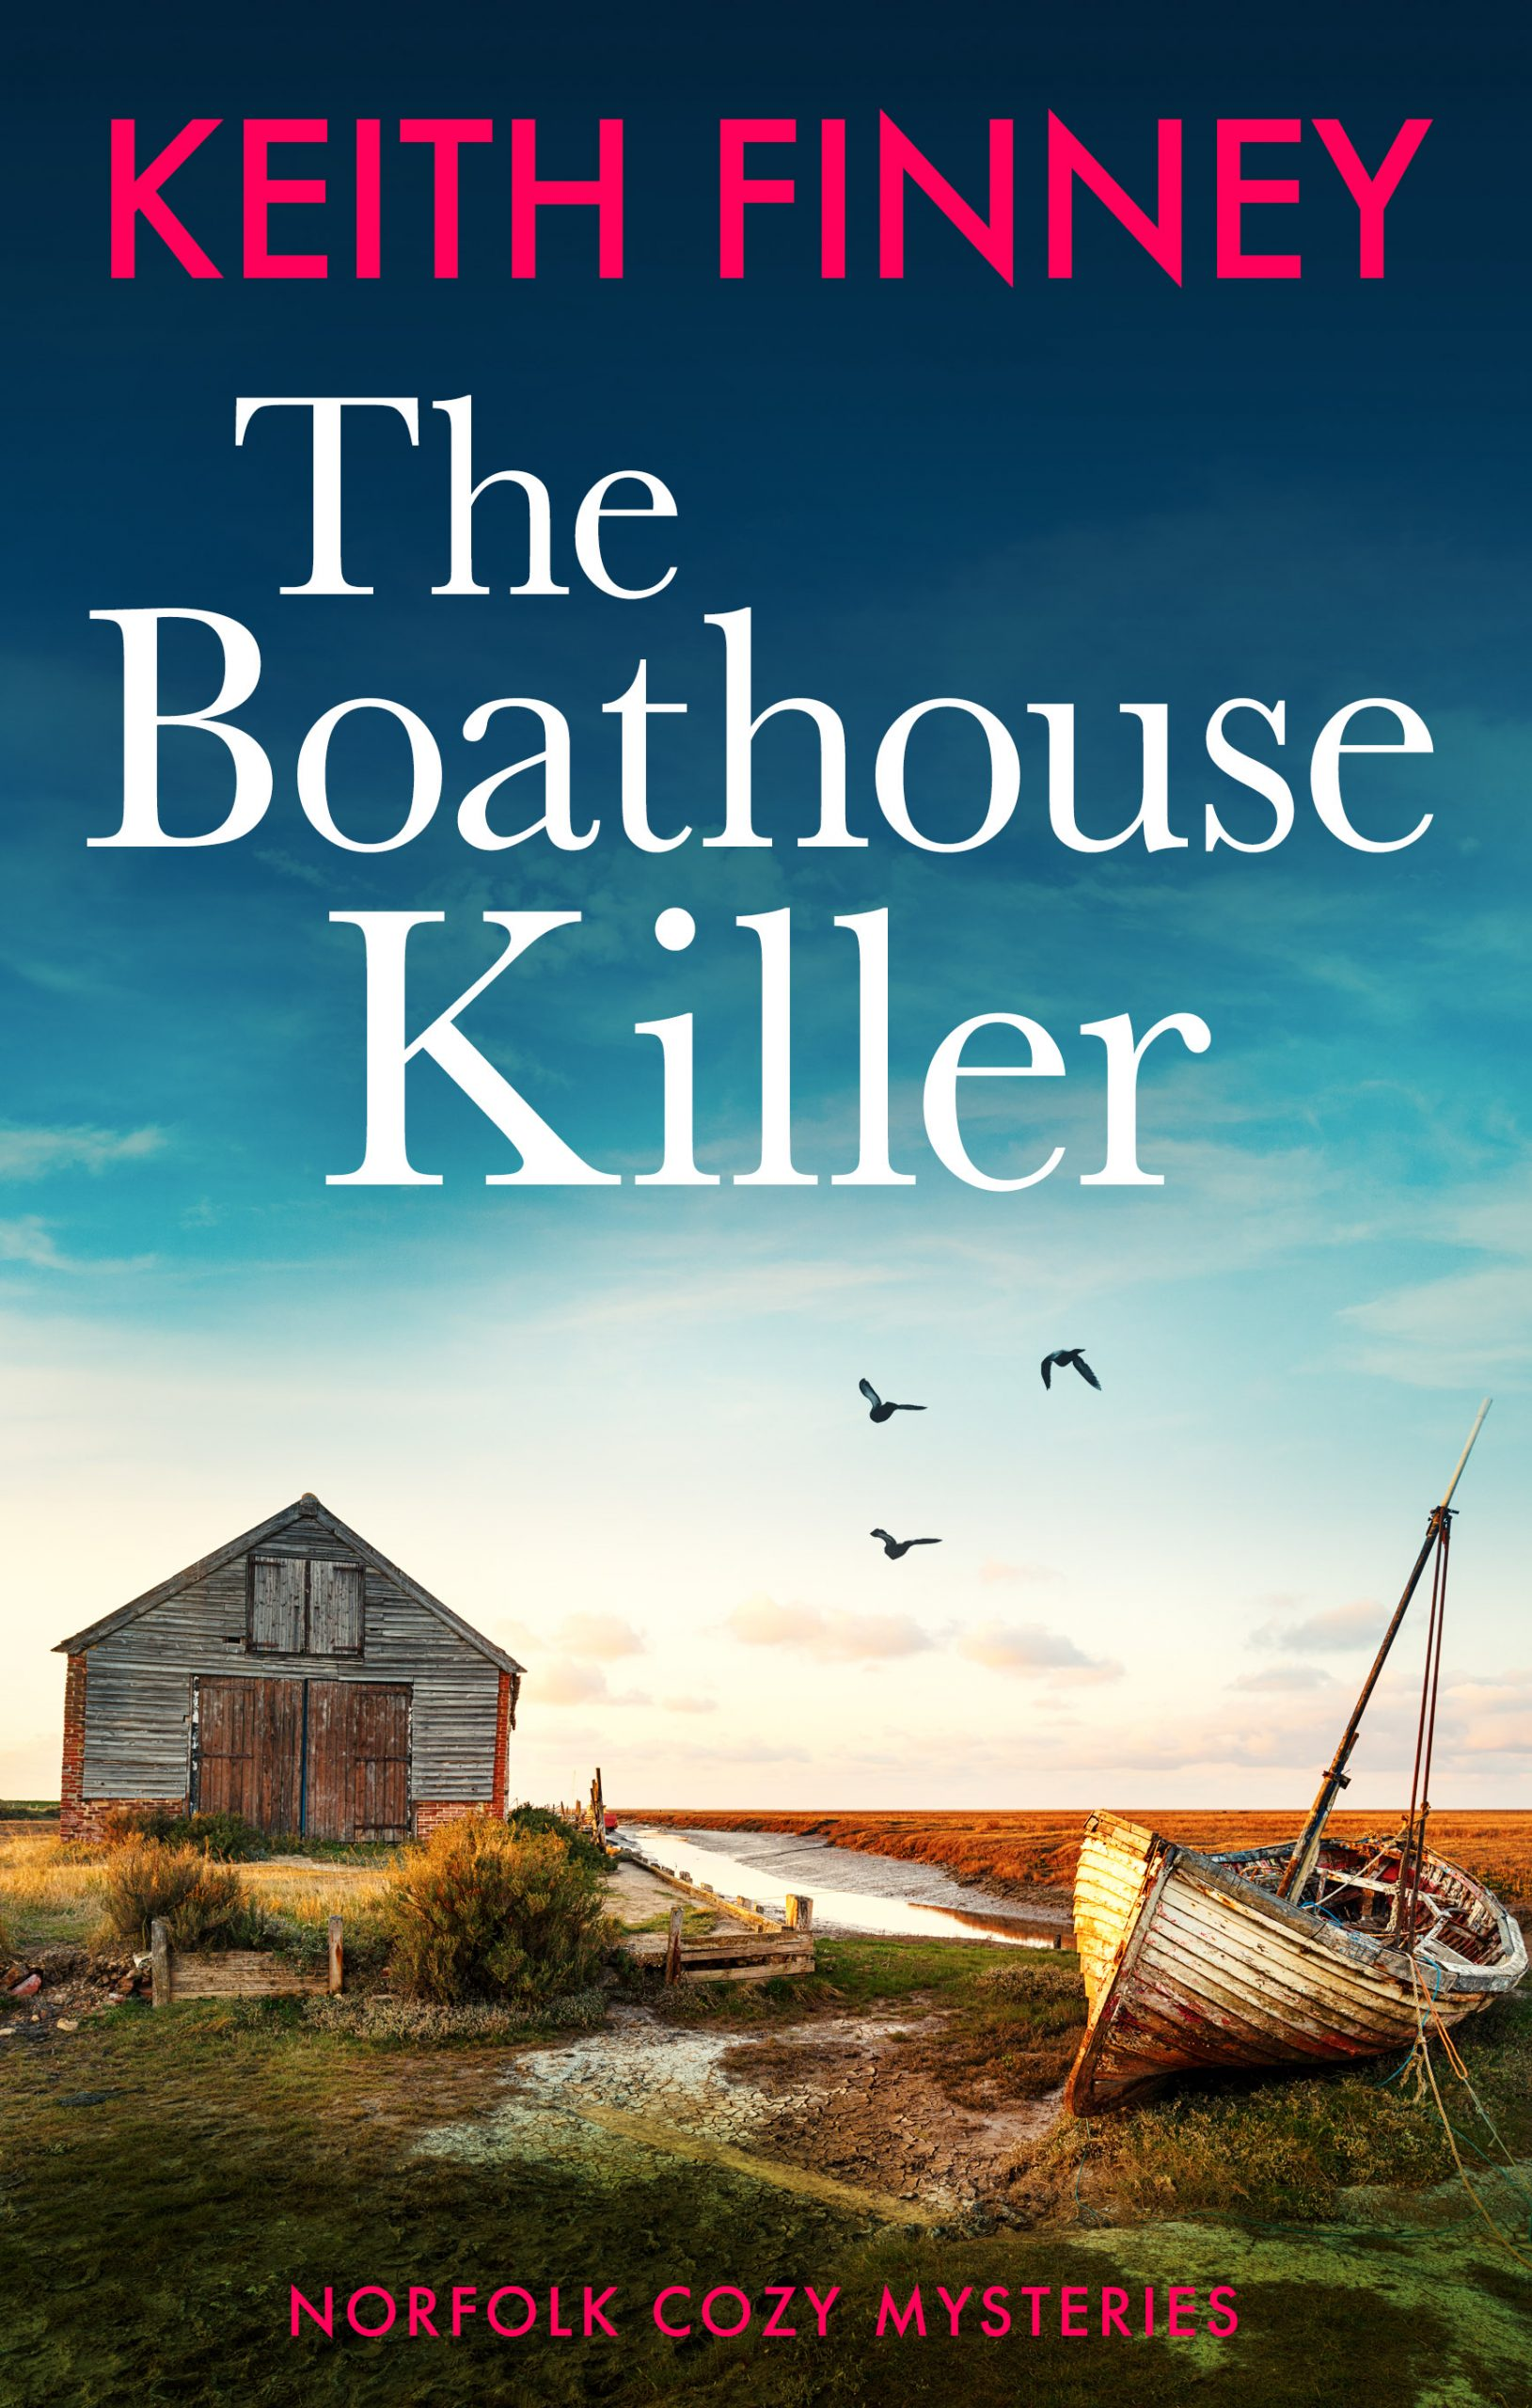 The Boathouse Killer